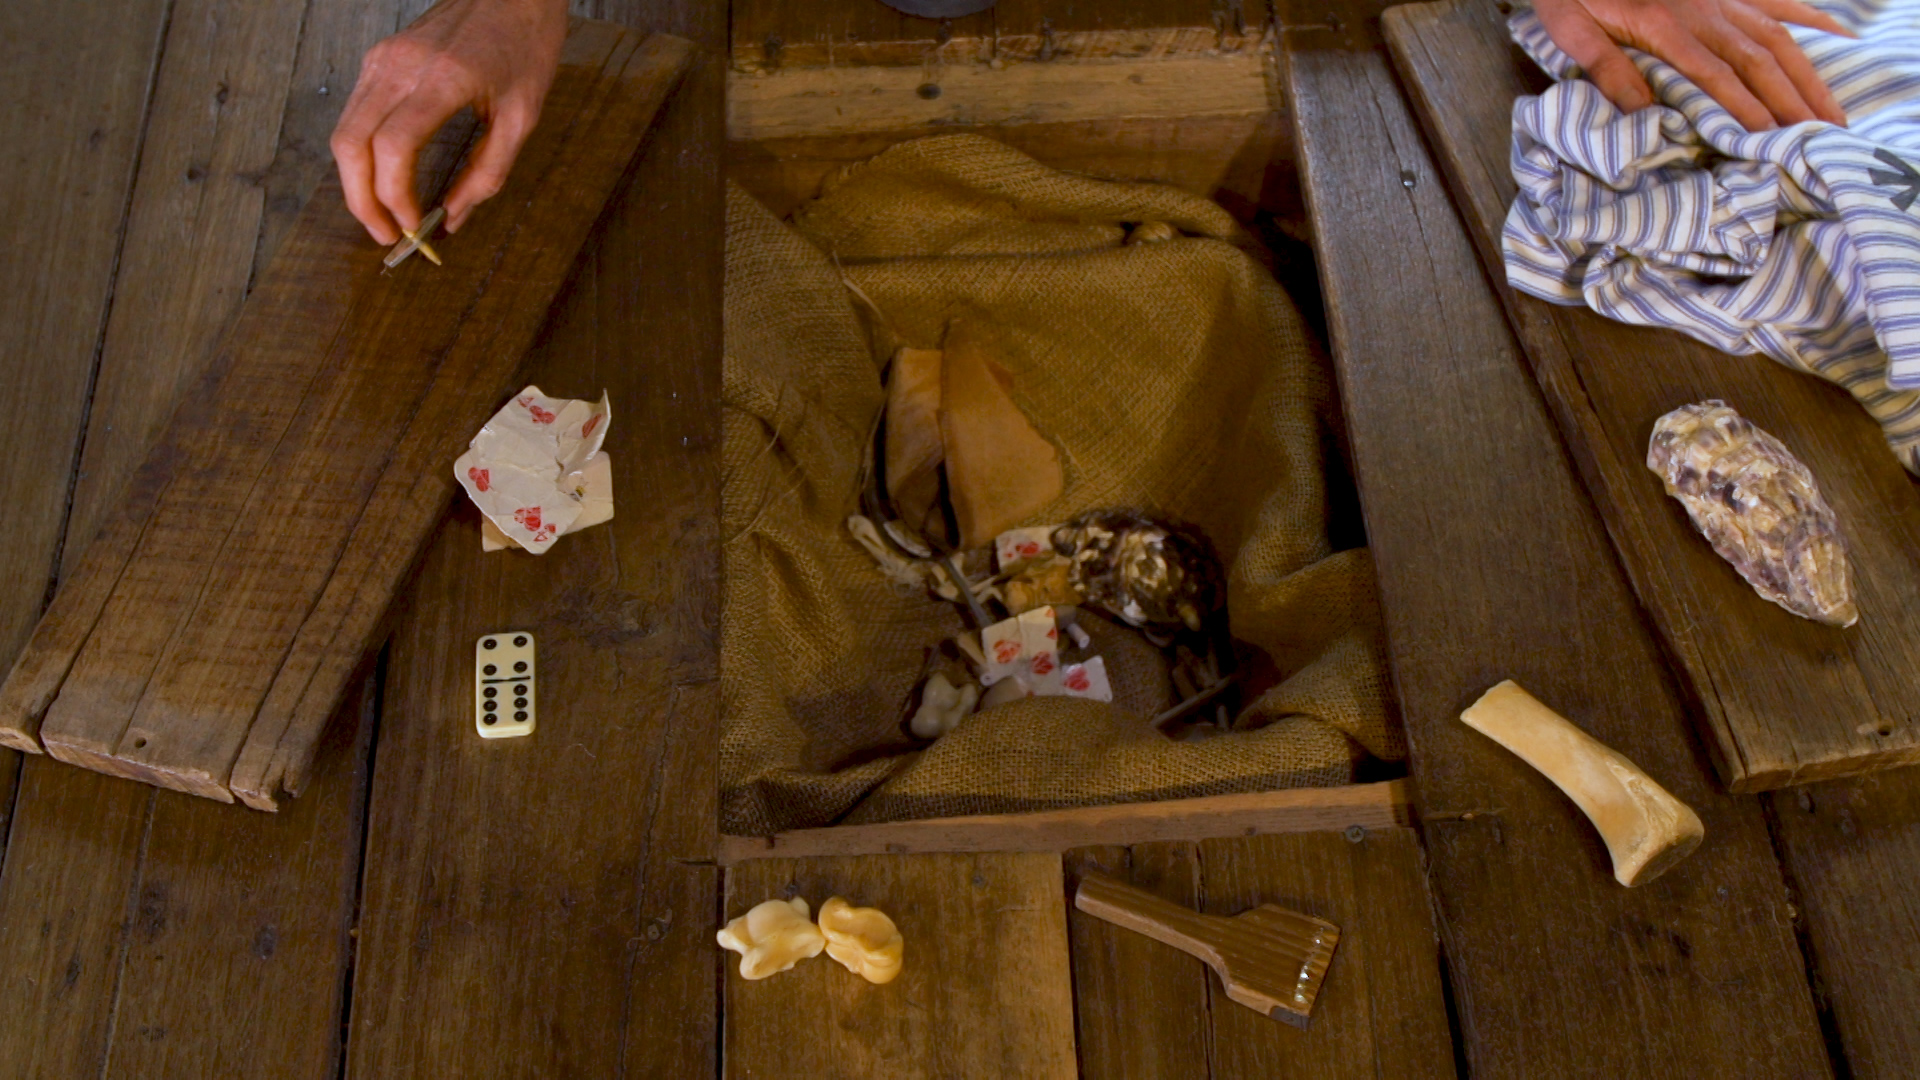 View of opened floorboard space with artefacts.